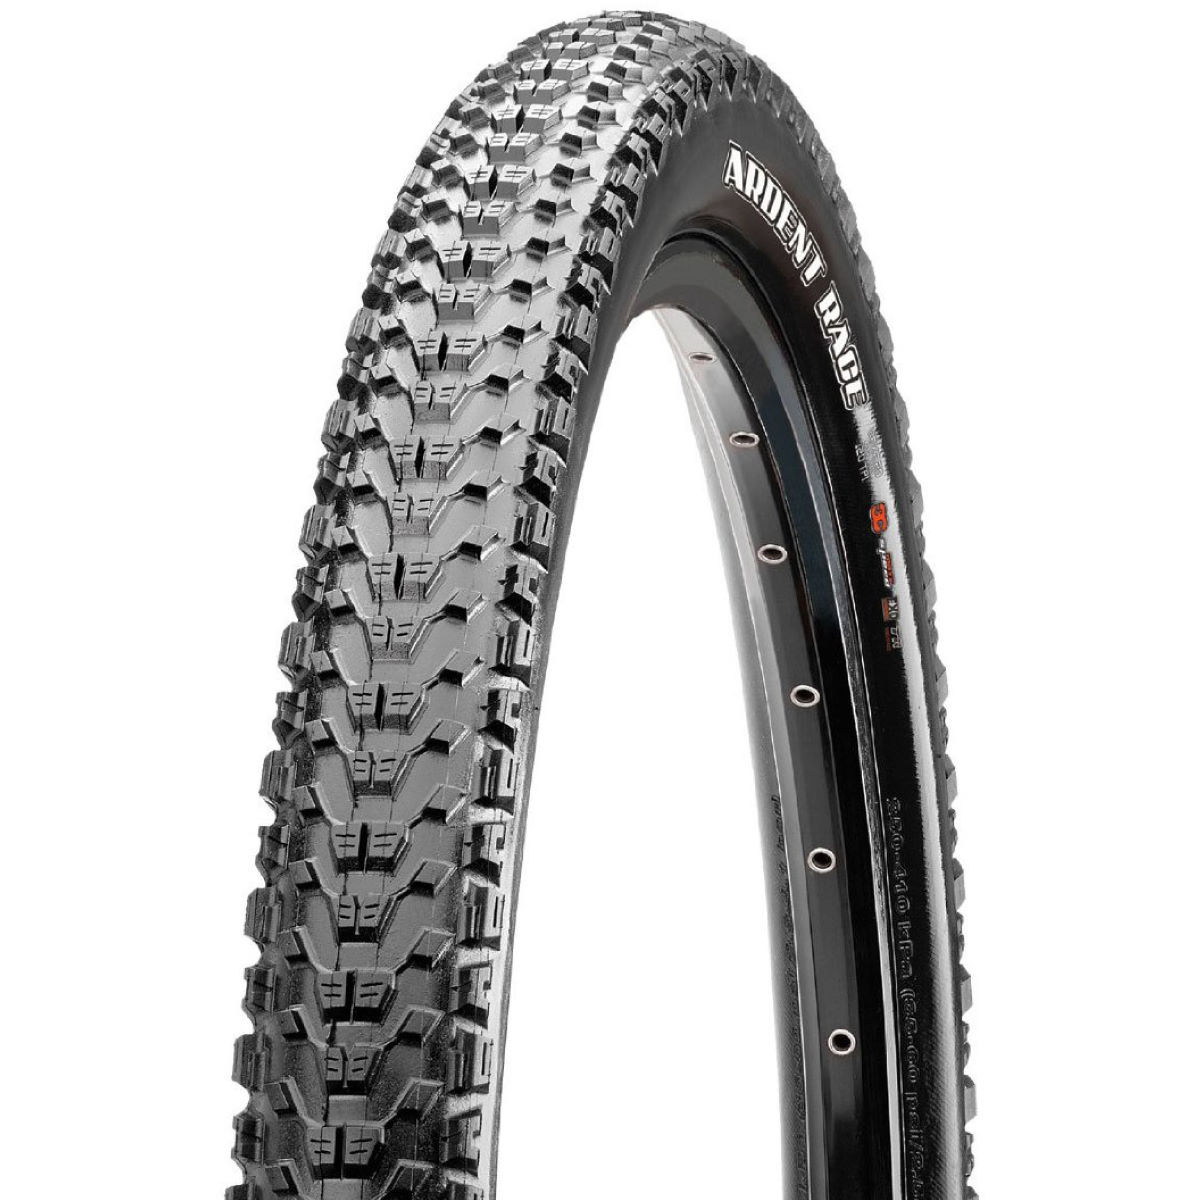 Maxxis Maxxis Ardent Race MTB Tyre - EXO - TR - 3C   Tyres